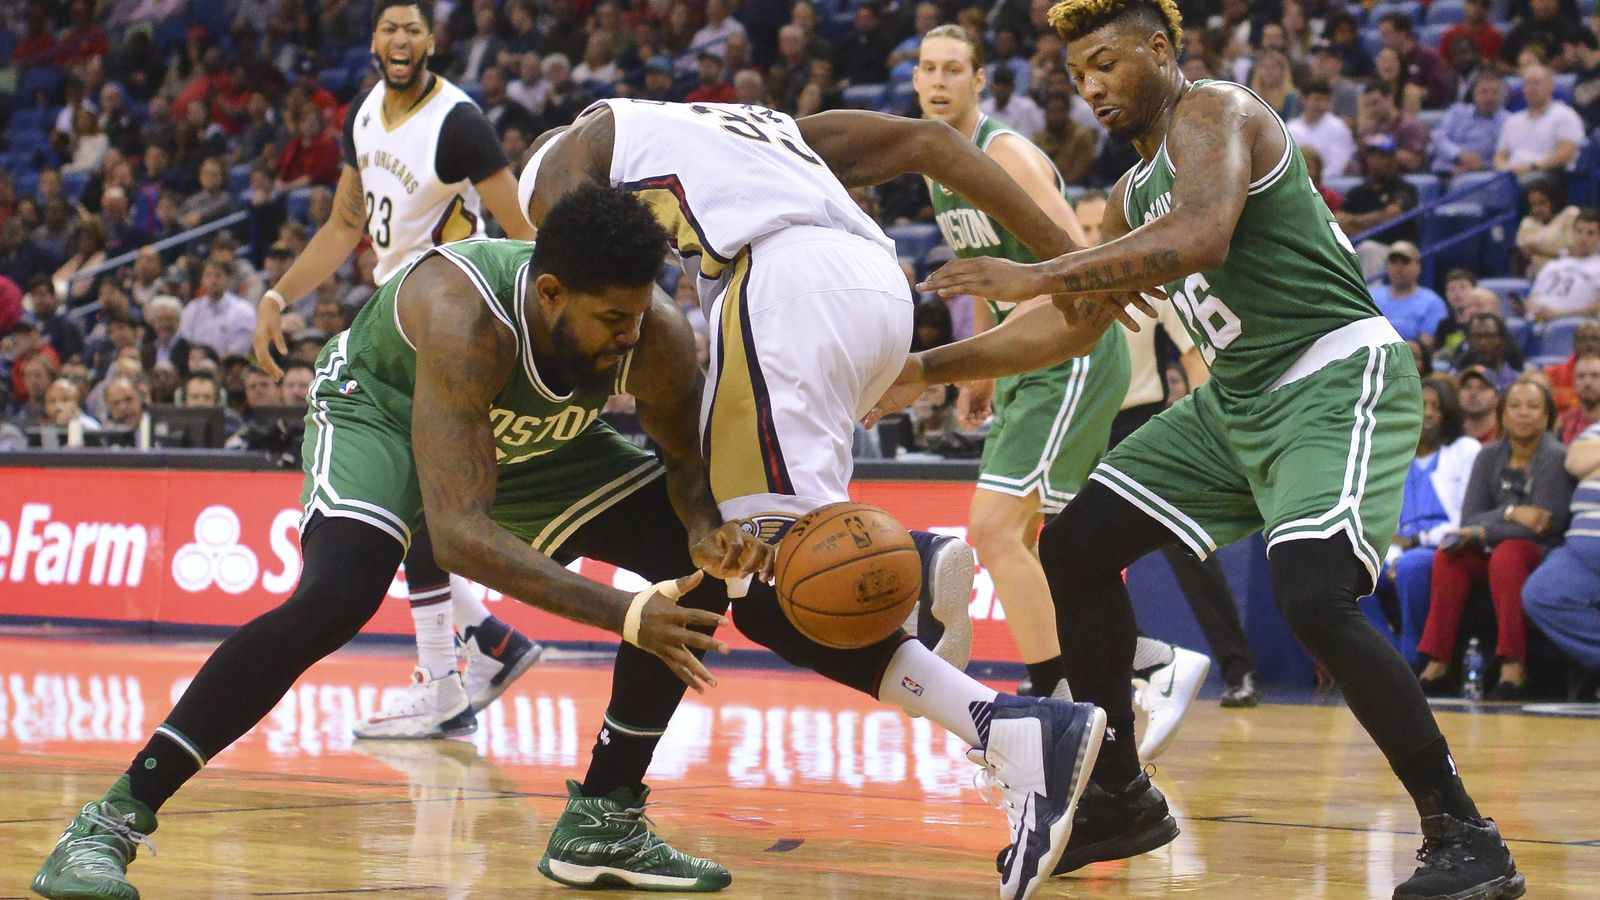 Boston Celtics can't get the last minute victory, lose to New Orleans Pelicans 106-105 - CelticsBlog